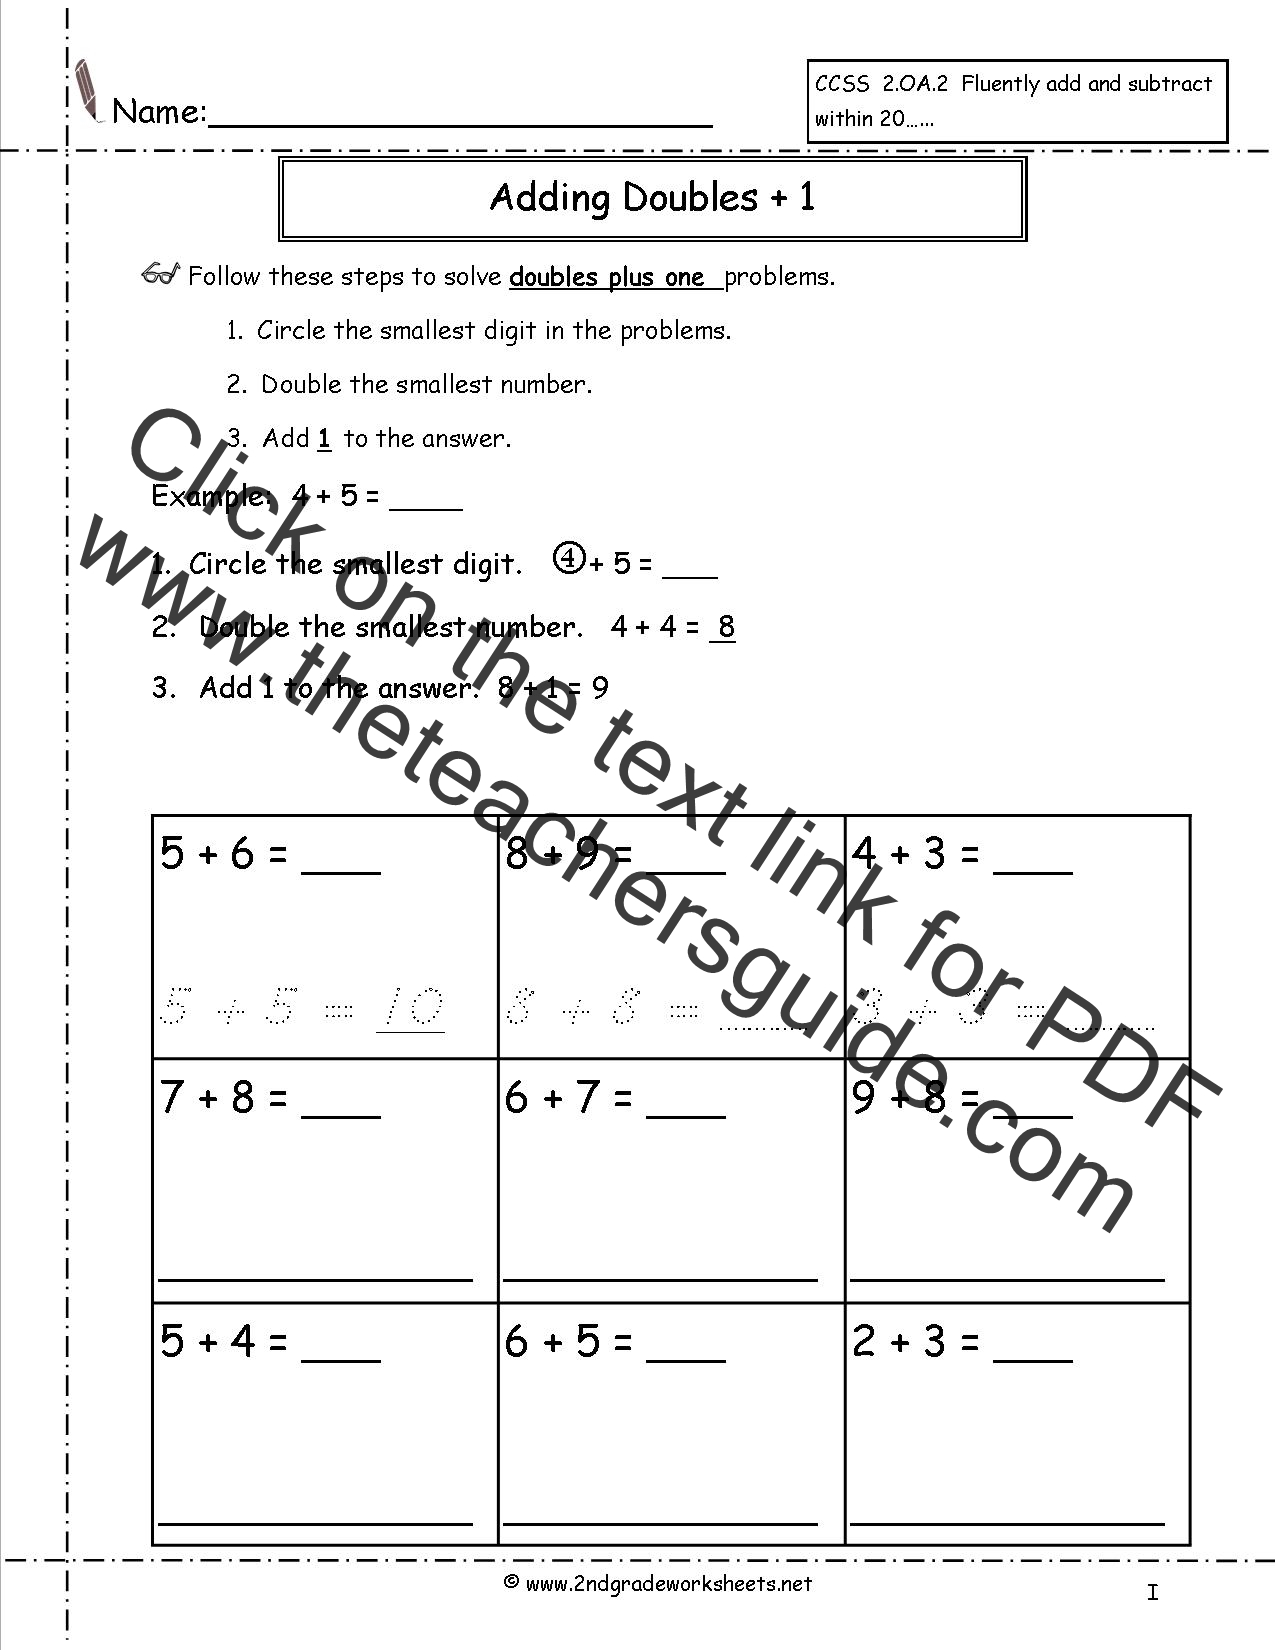 Free Single Digit Addition Worksheets – Doubles Plus One Worksheet